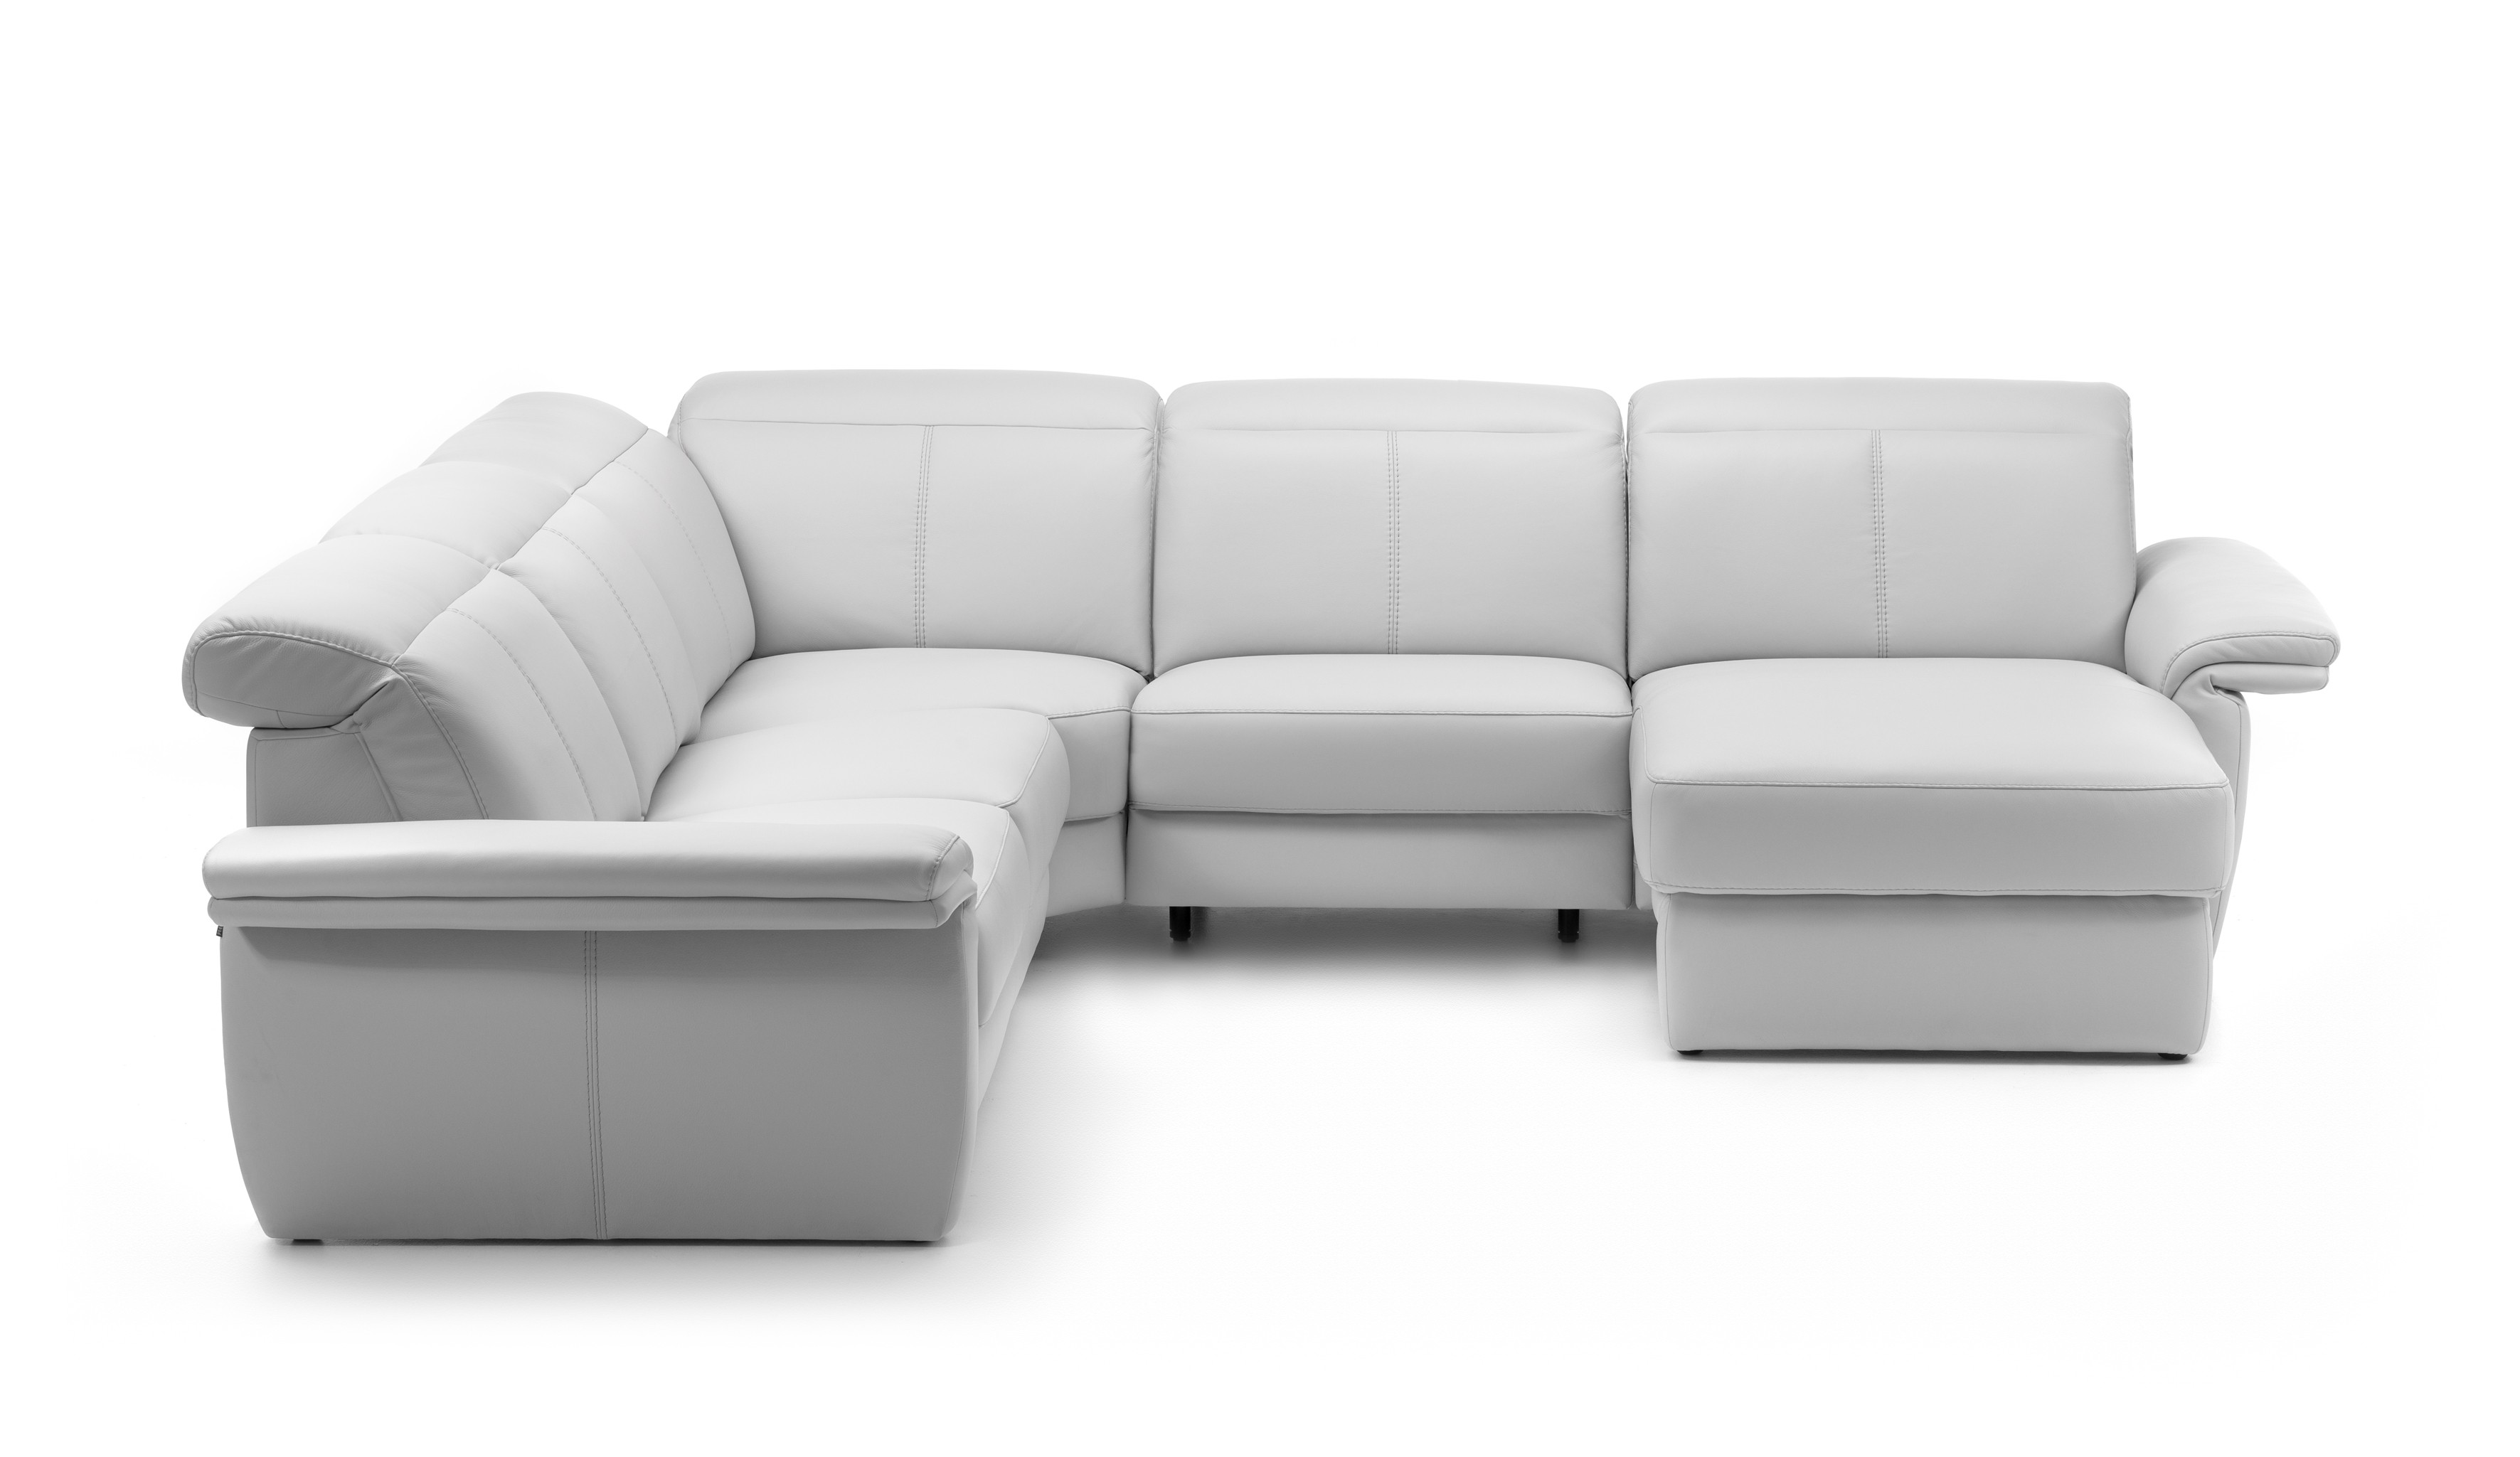 Minos Leather Sectional   Rom   Made in Belgium